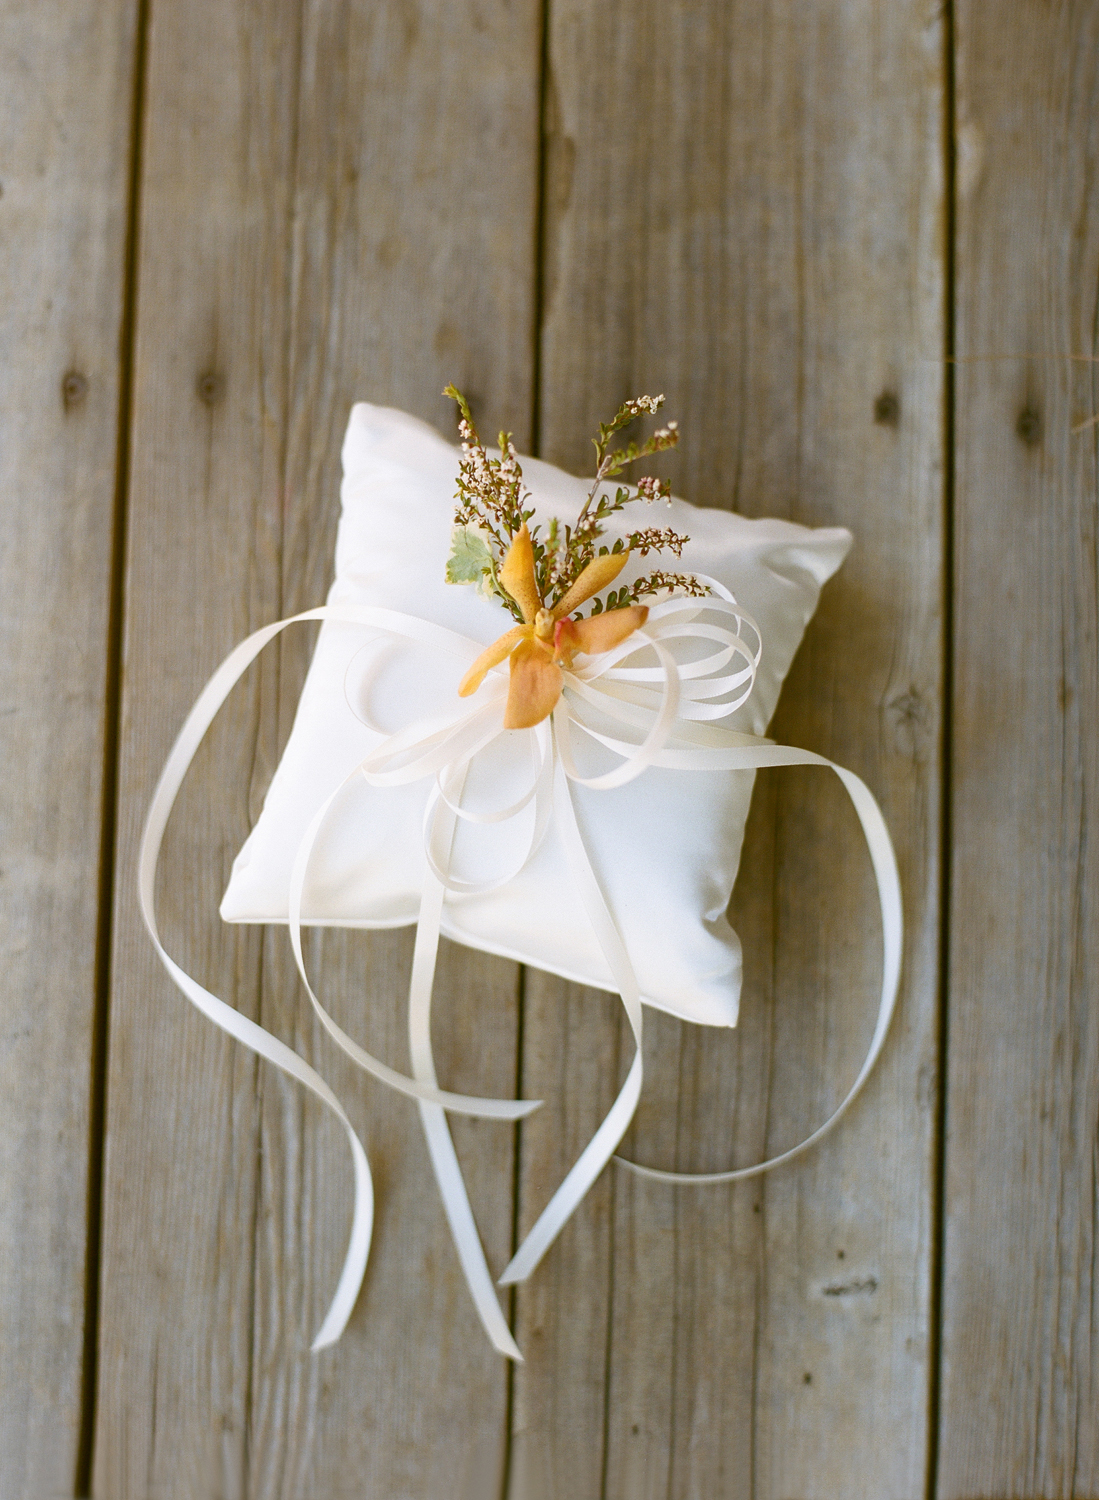 Ring bearer pillow with fresh sprig